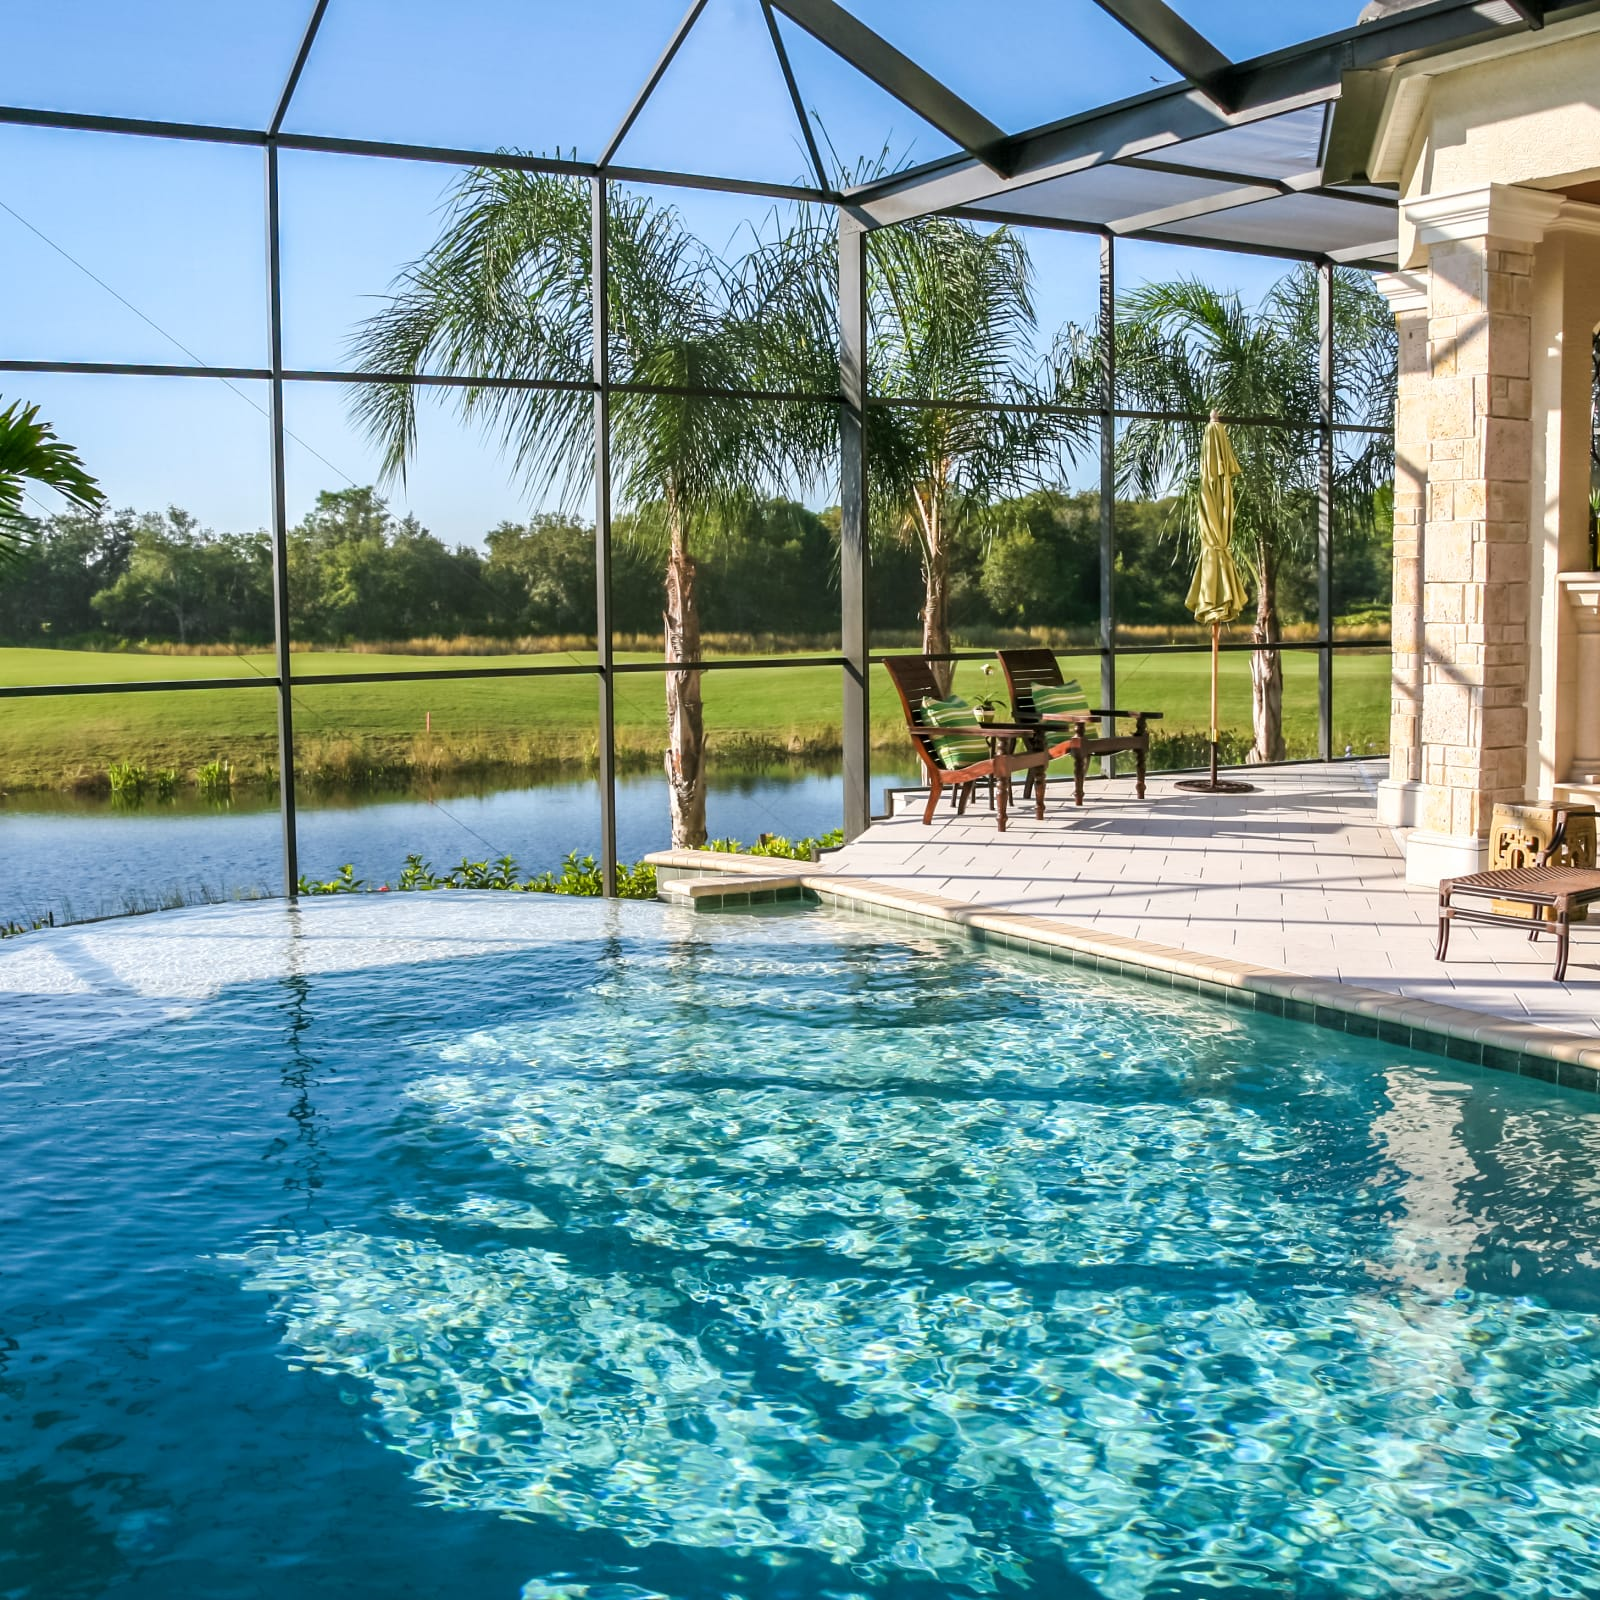 How A Pool Affects Your Homeowners Insurance Valuepenguin